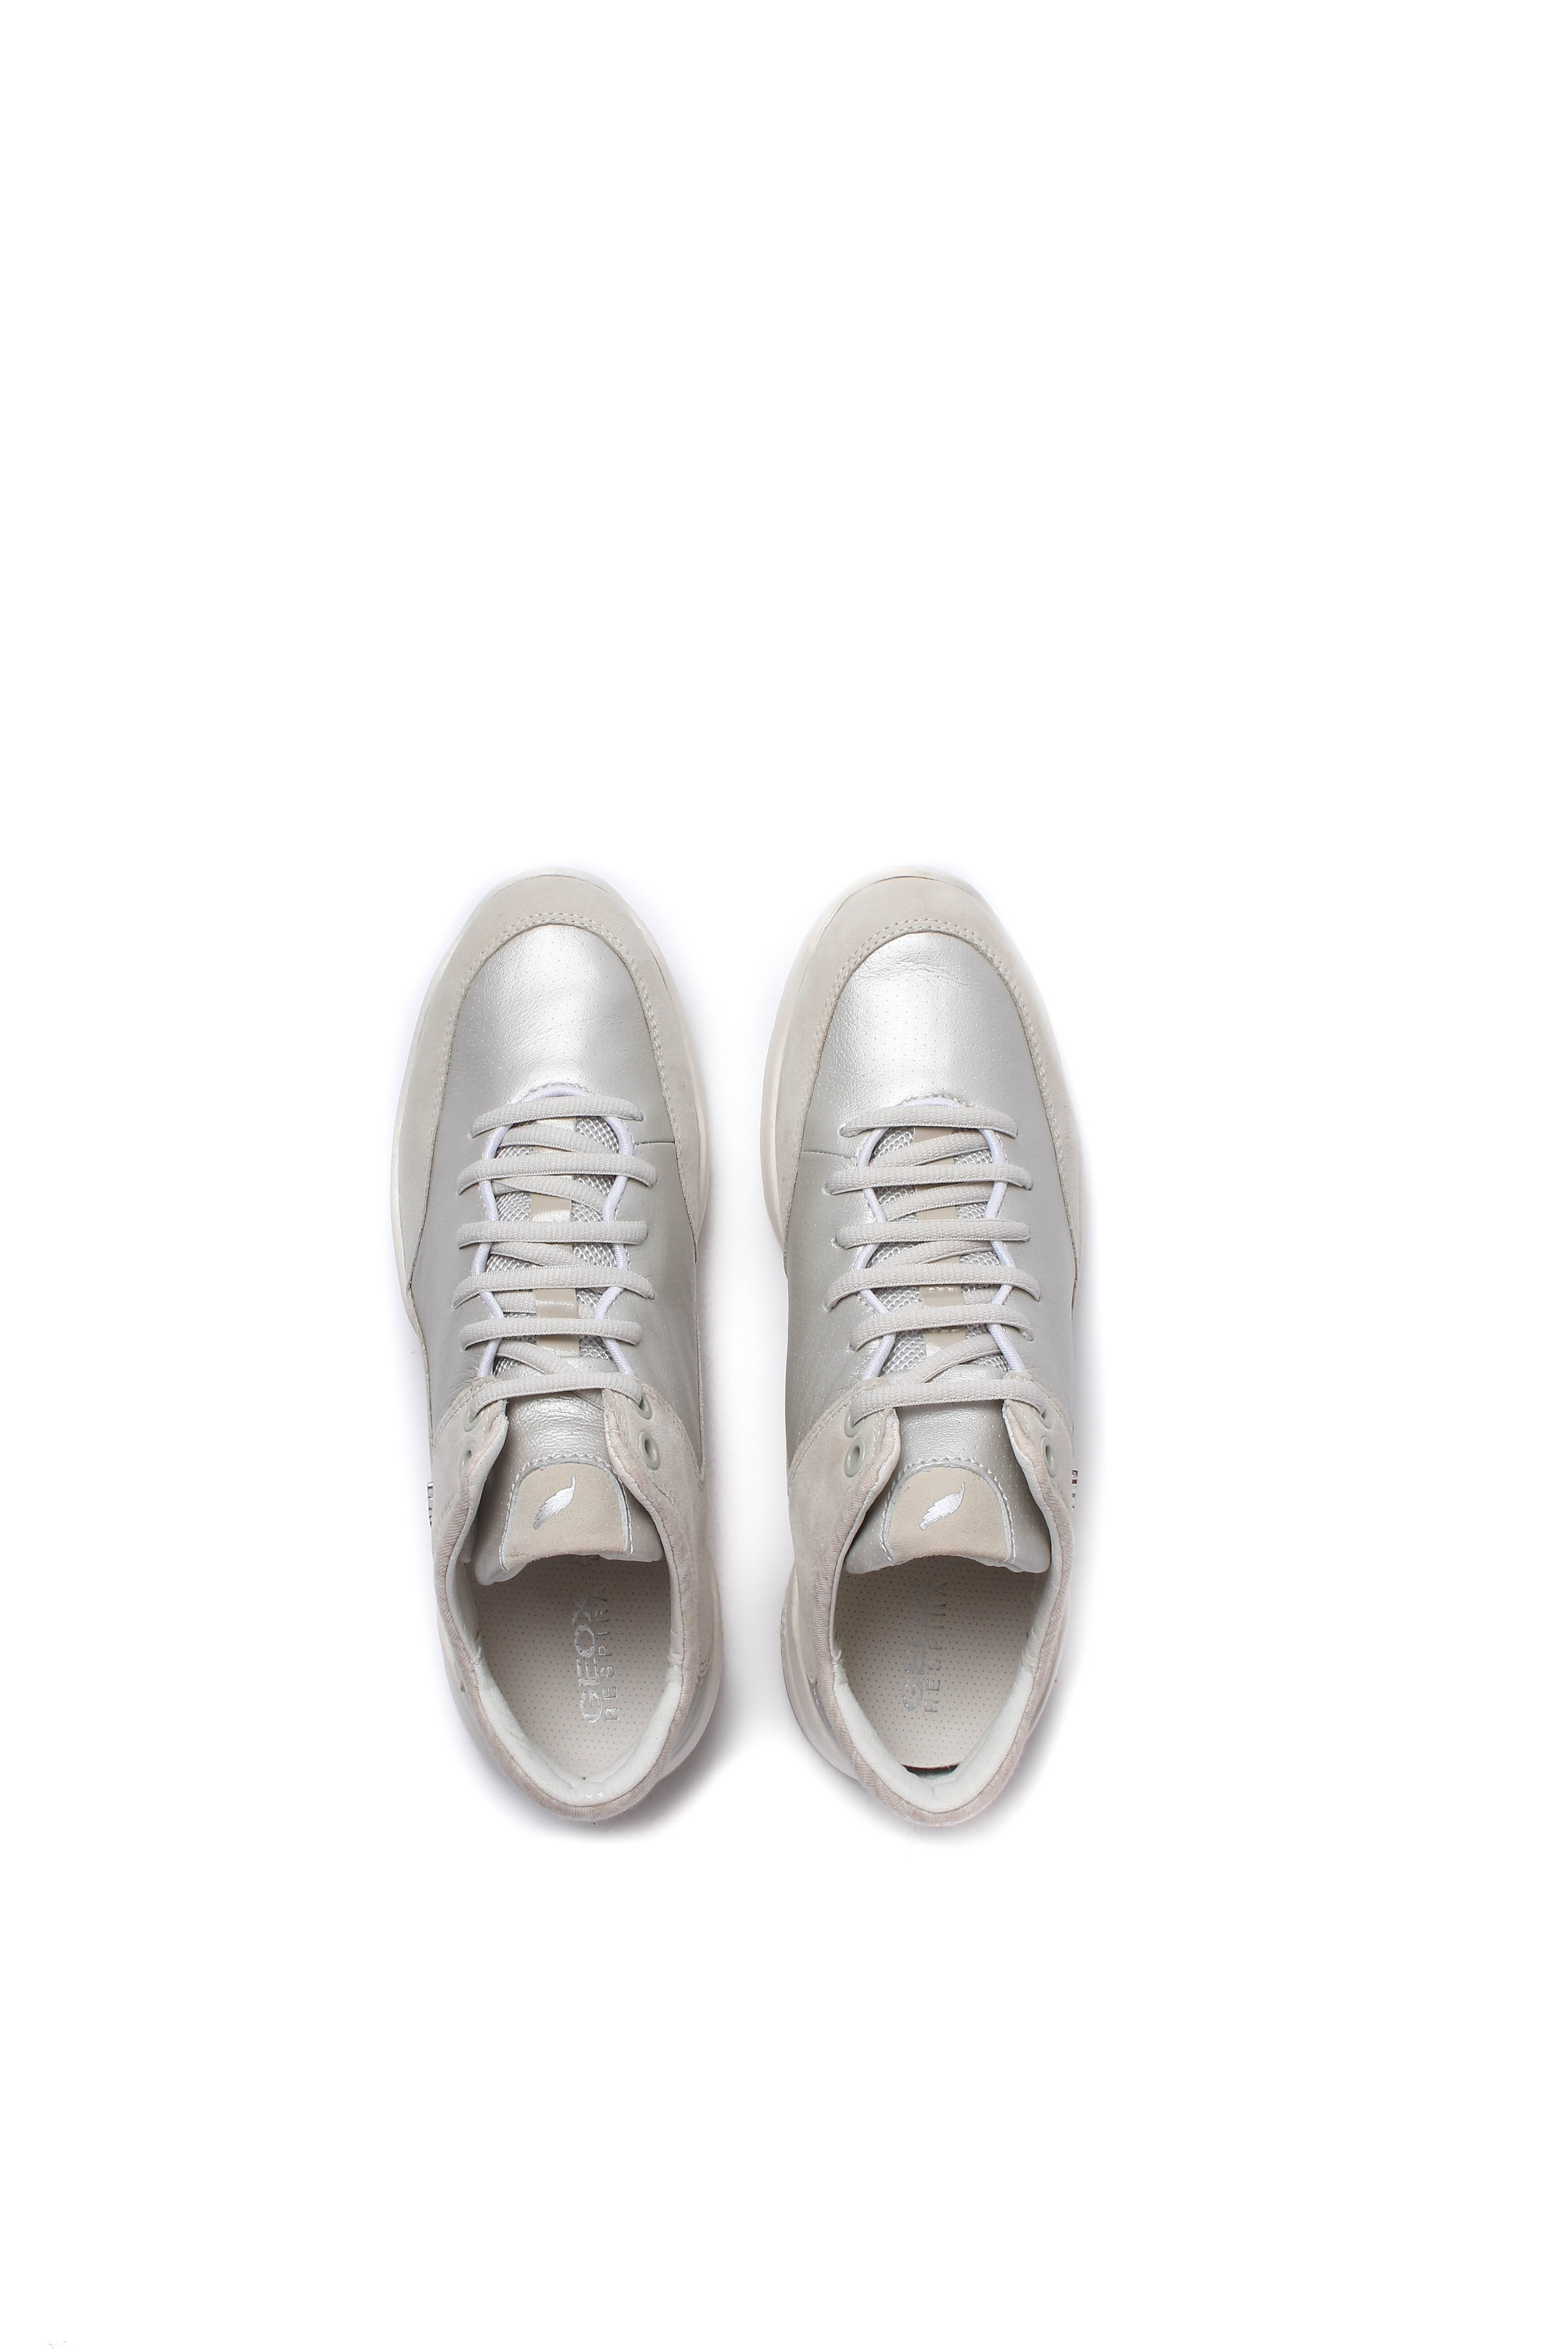 Geox Women's Sfinge Metallic Leather & Suede Trainers - Platinum & Ivory